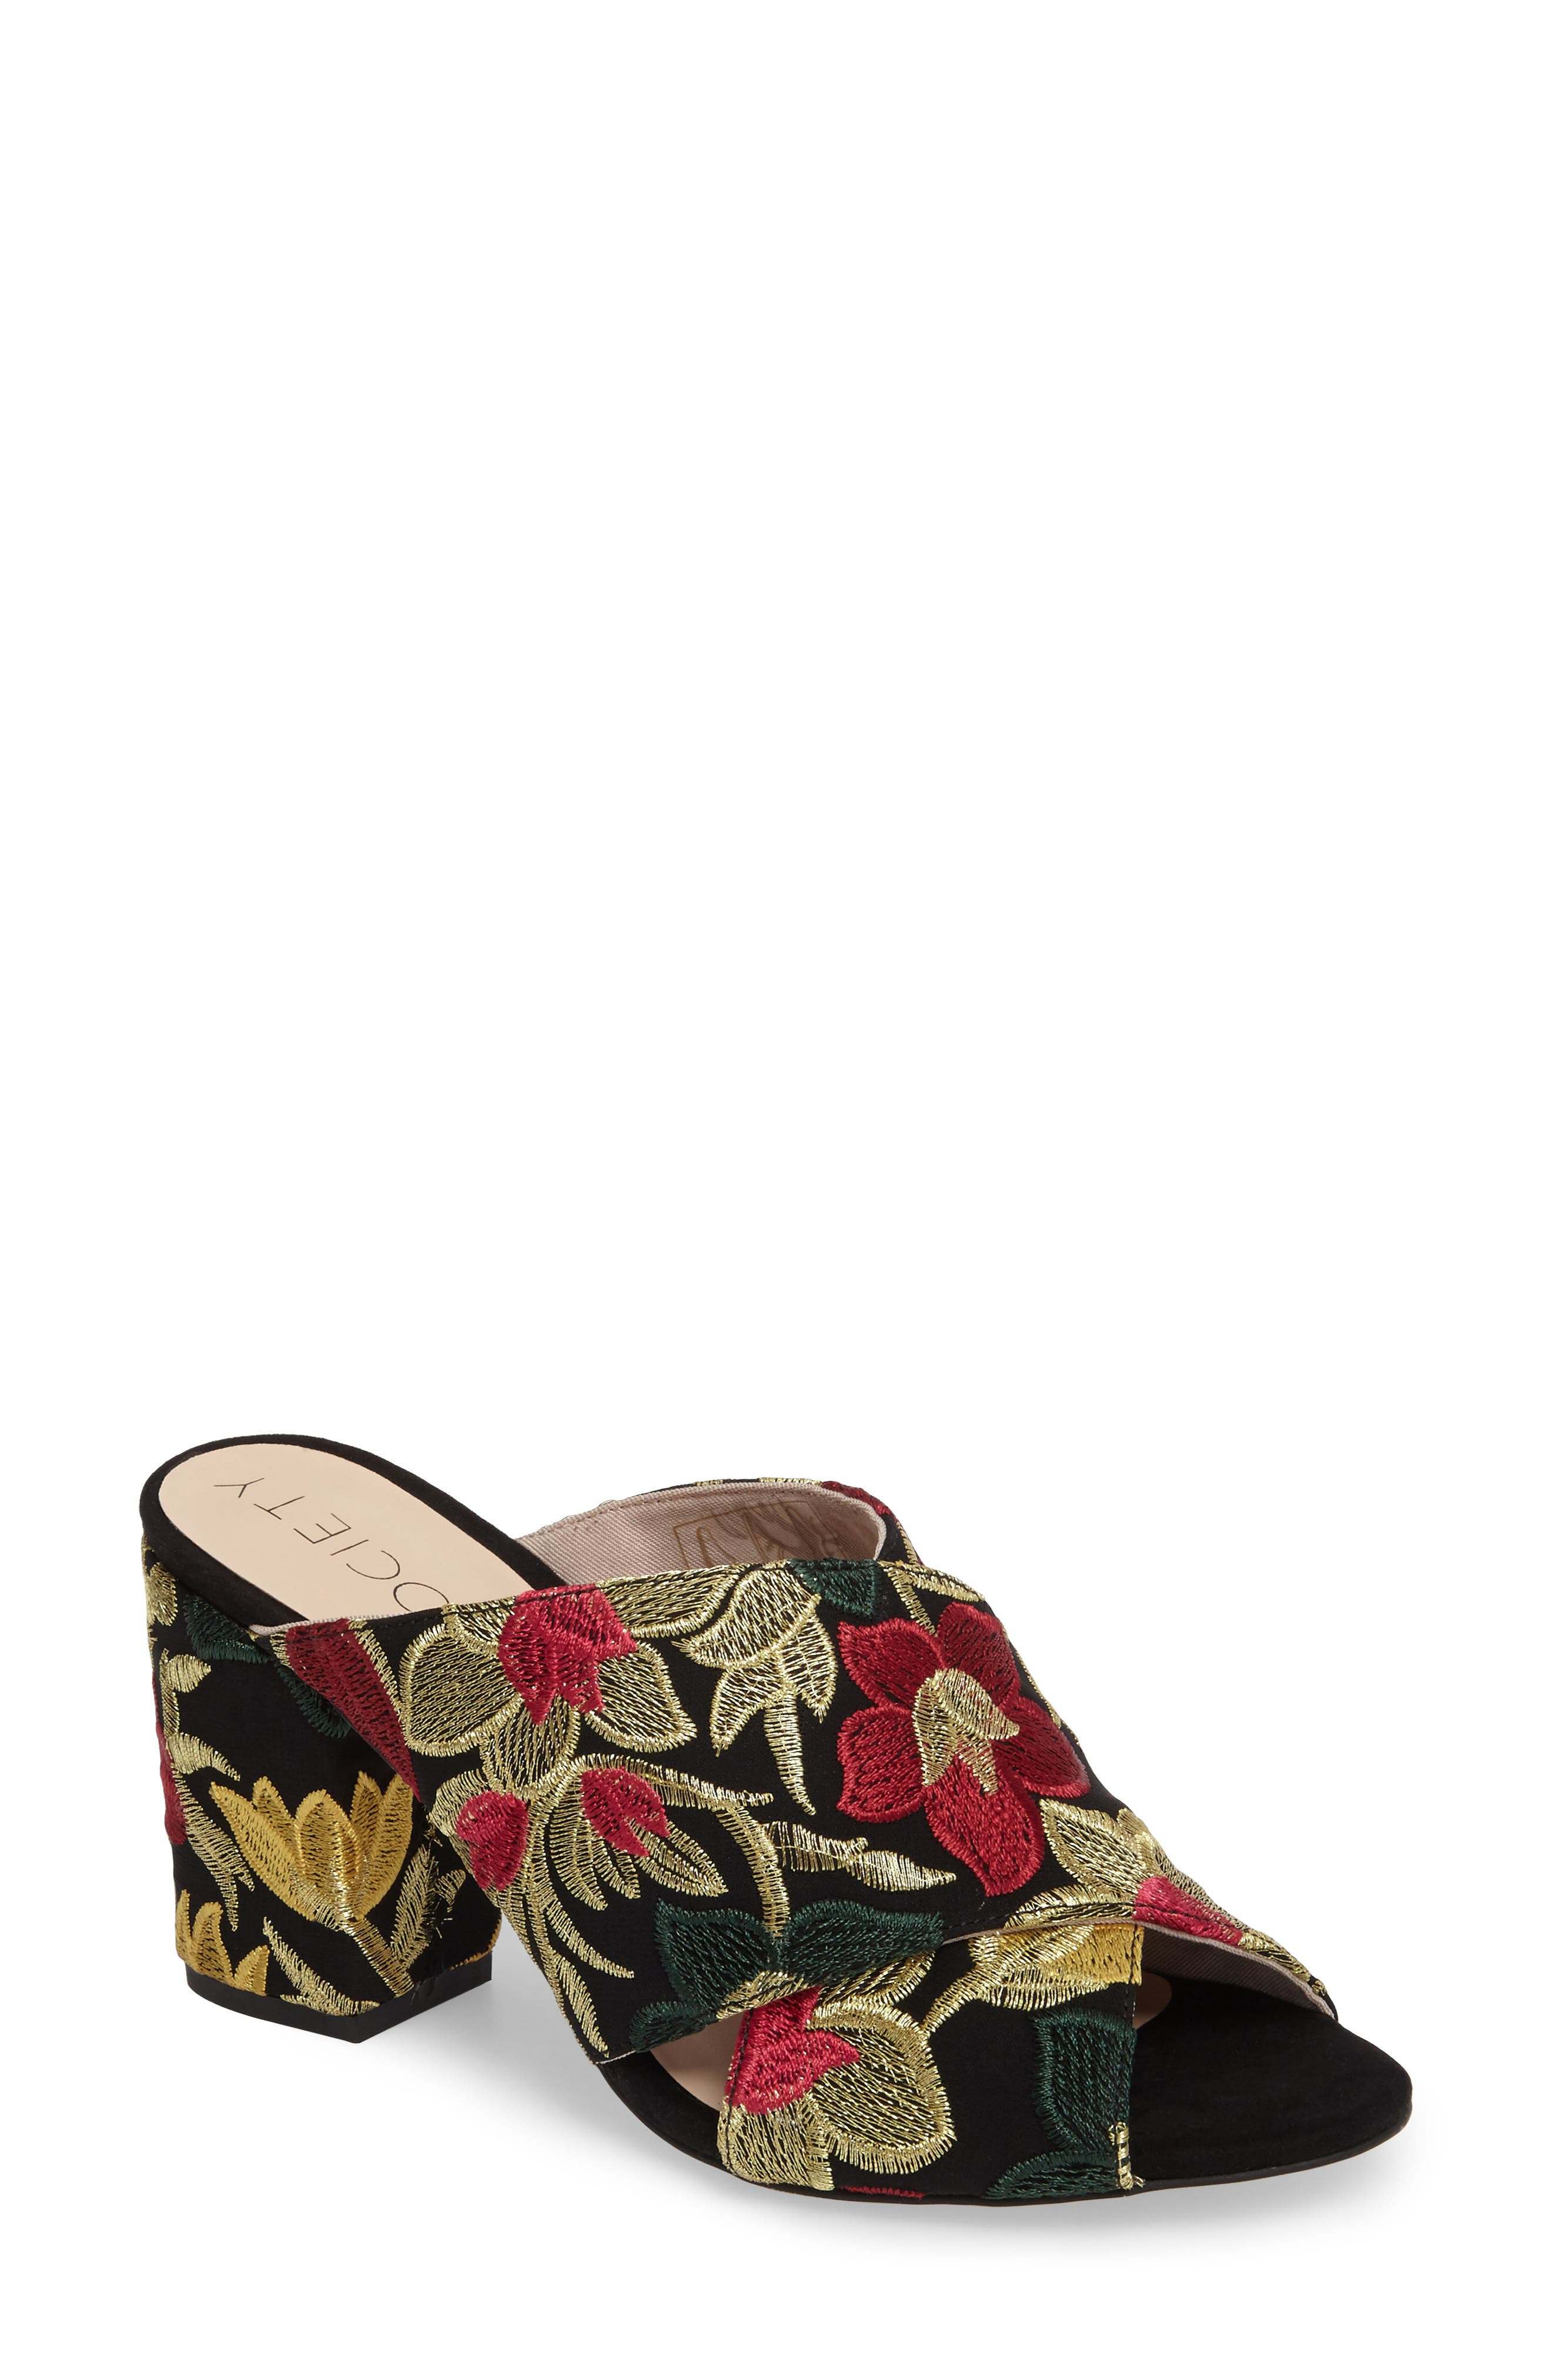 Luella Flower Embroidered Slide,                             Main thumbnail 8, color,